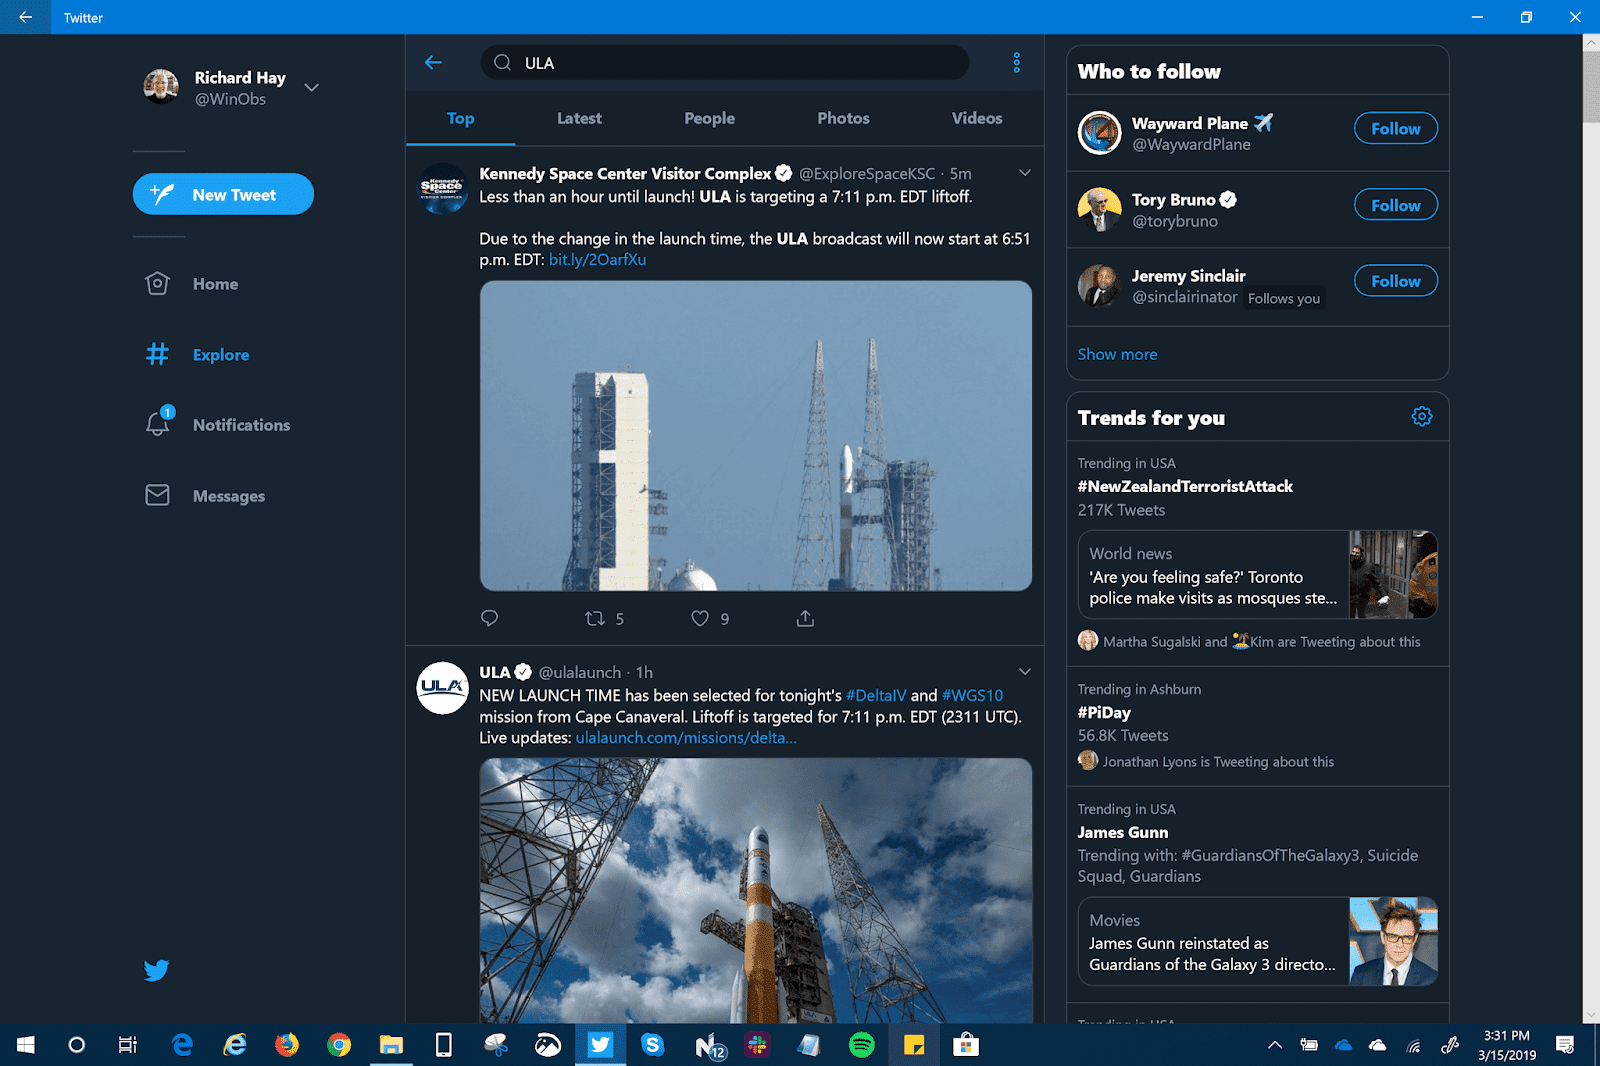 Twitter-ridisegna-PWA-Windows-10